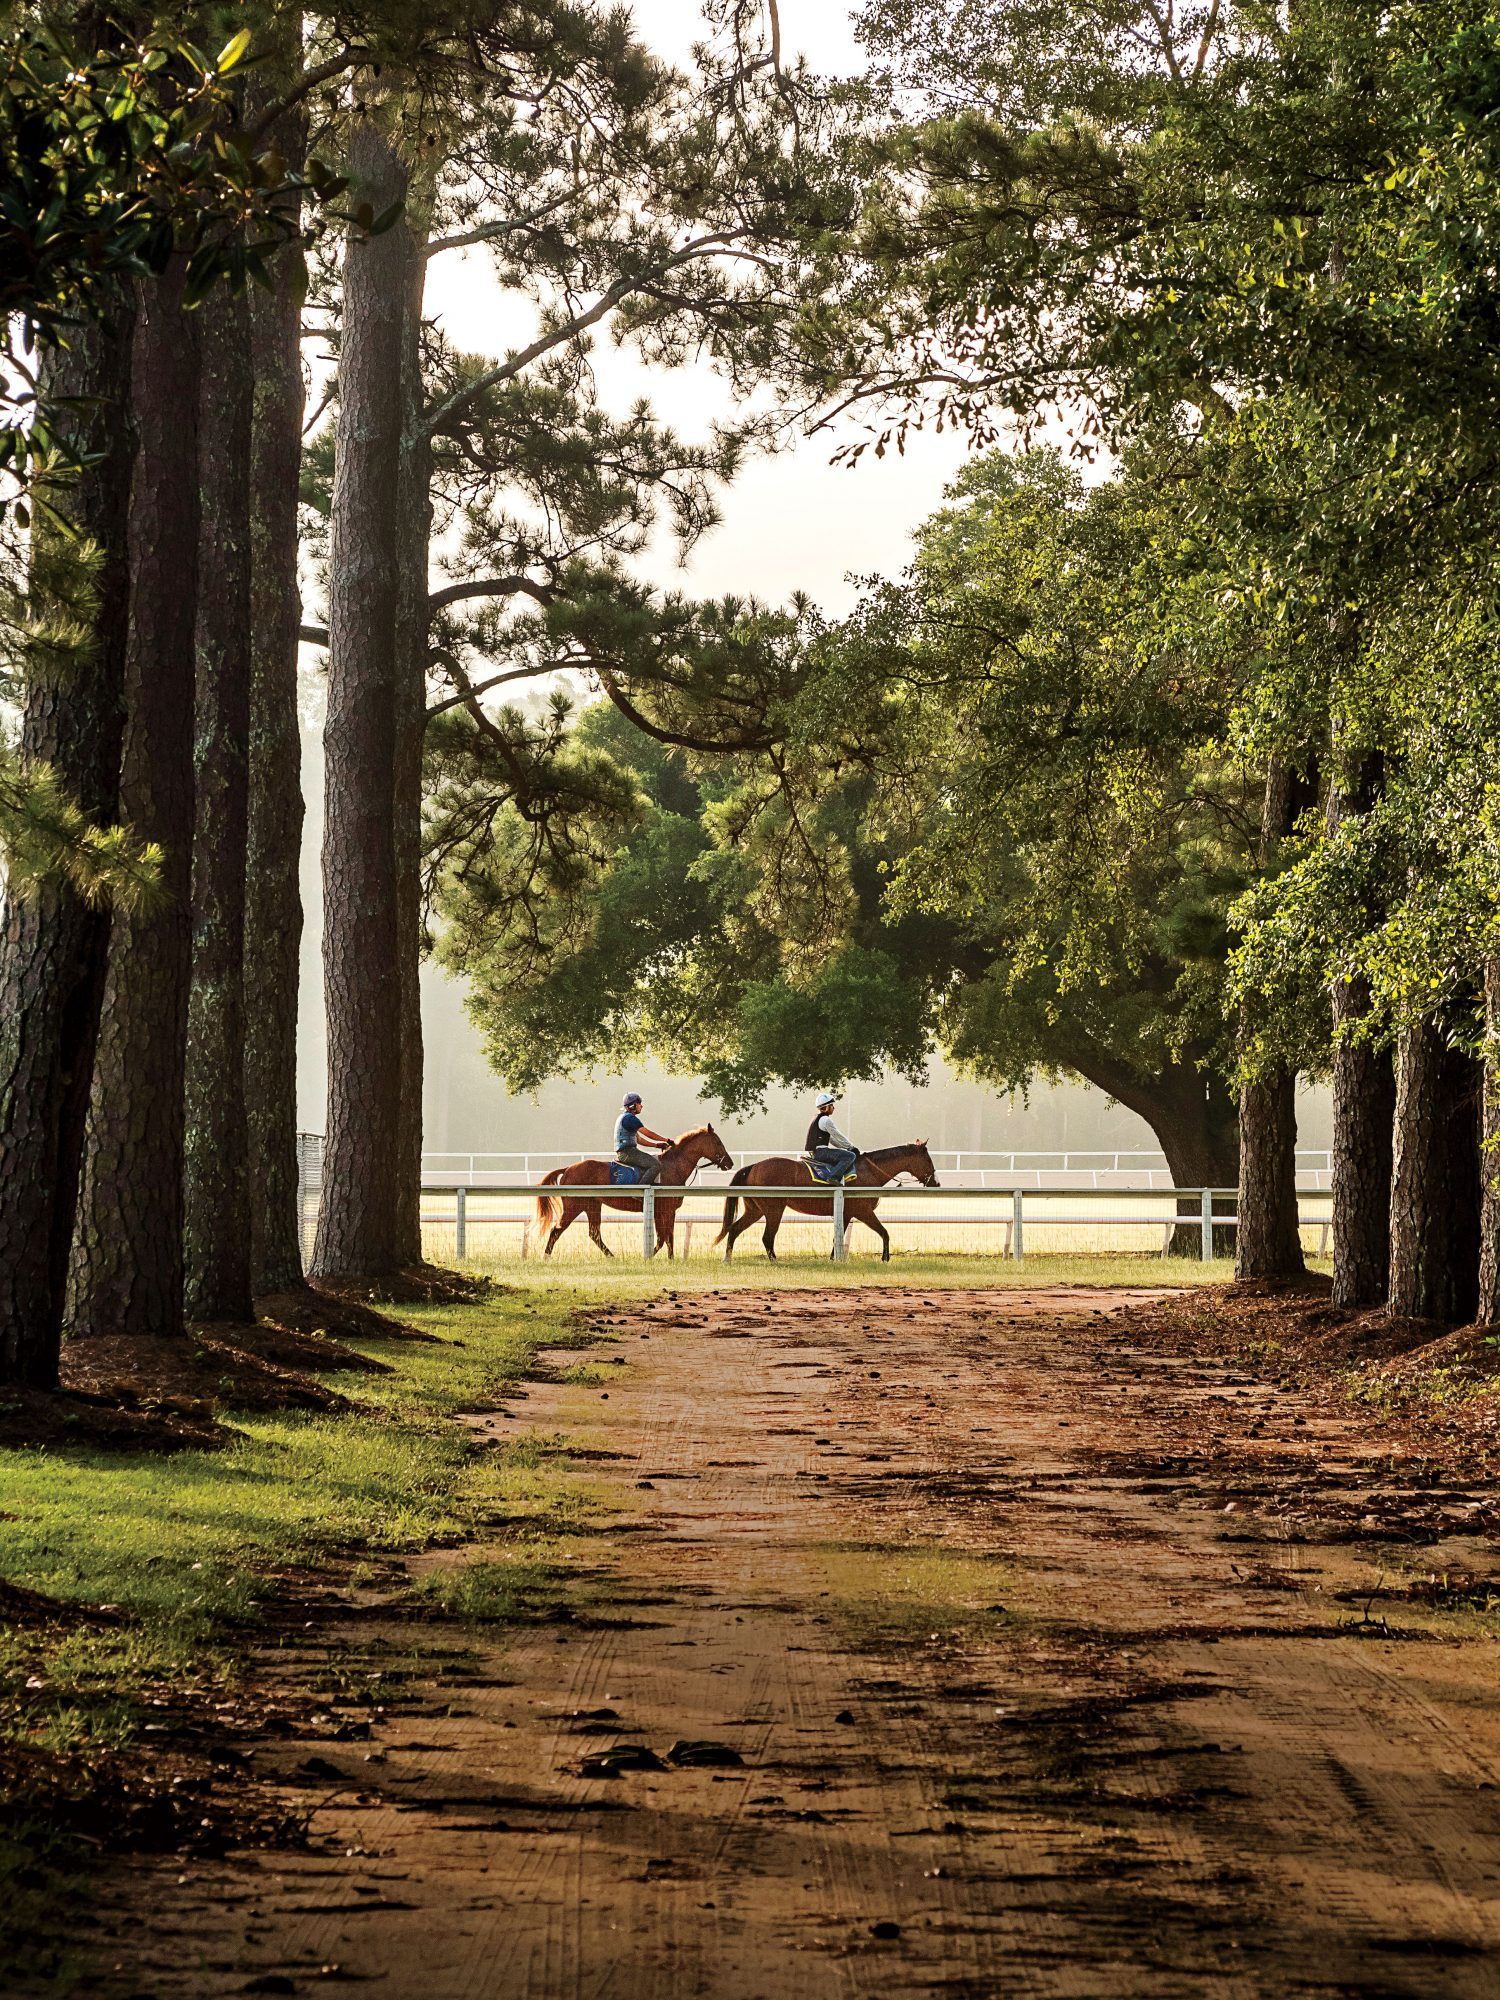 Reasons to Love Springtime in Horse Country - Southern Living